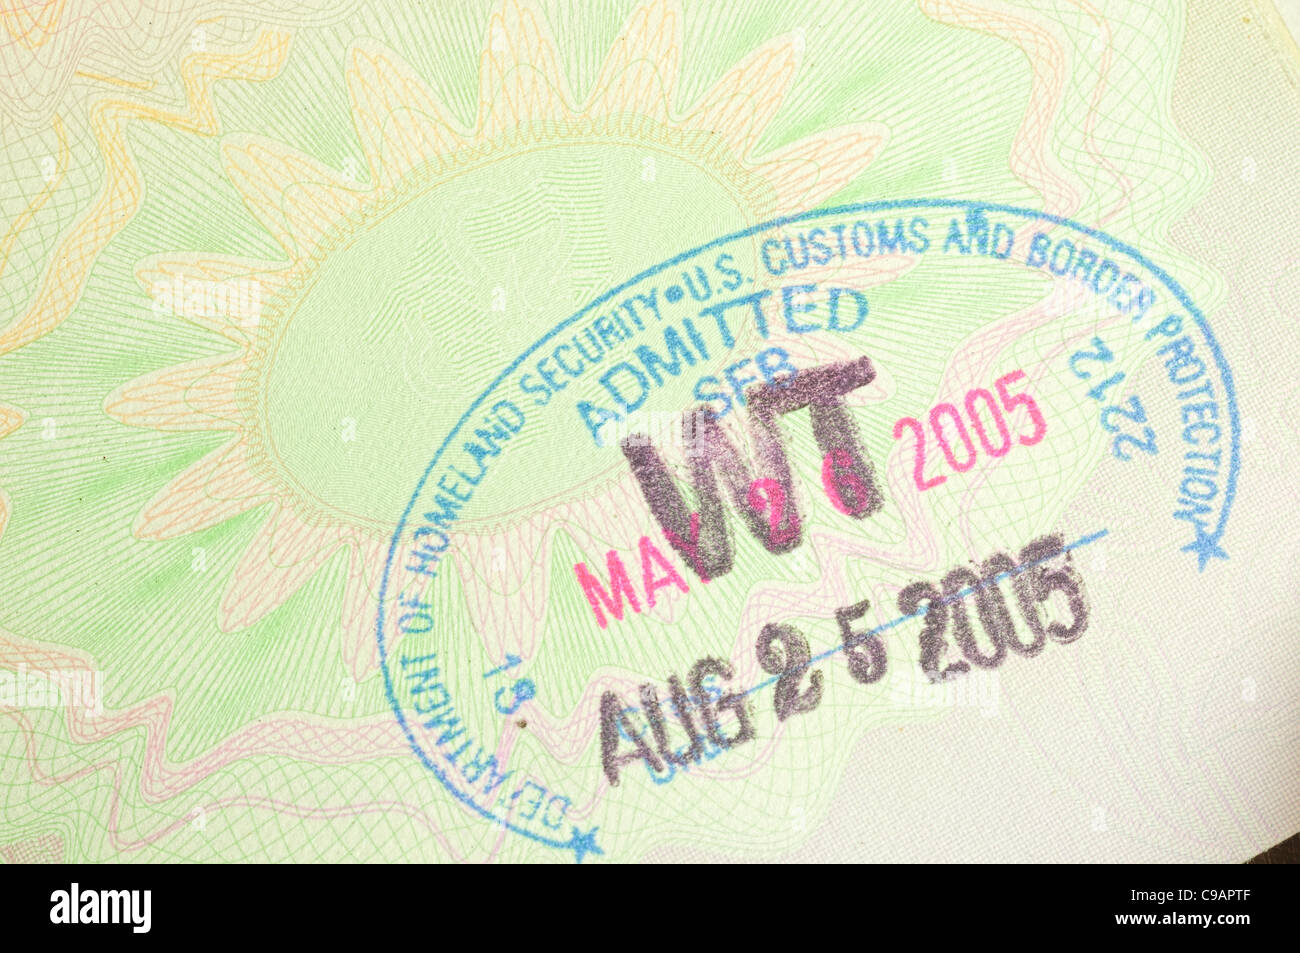 homeland security stamp - Stock Image